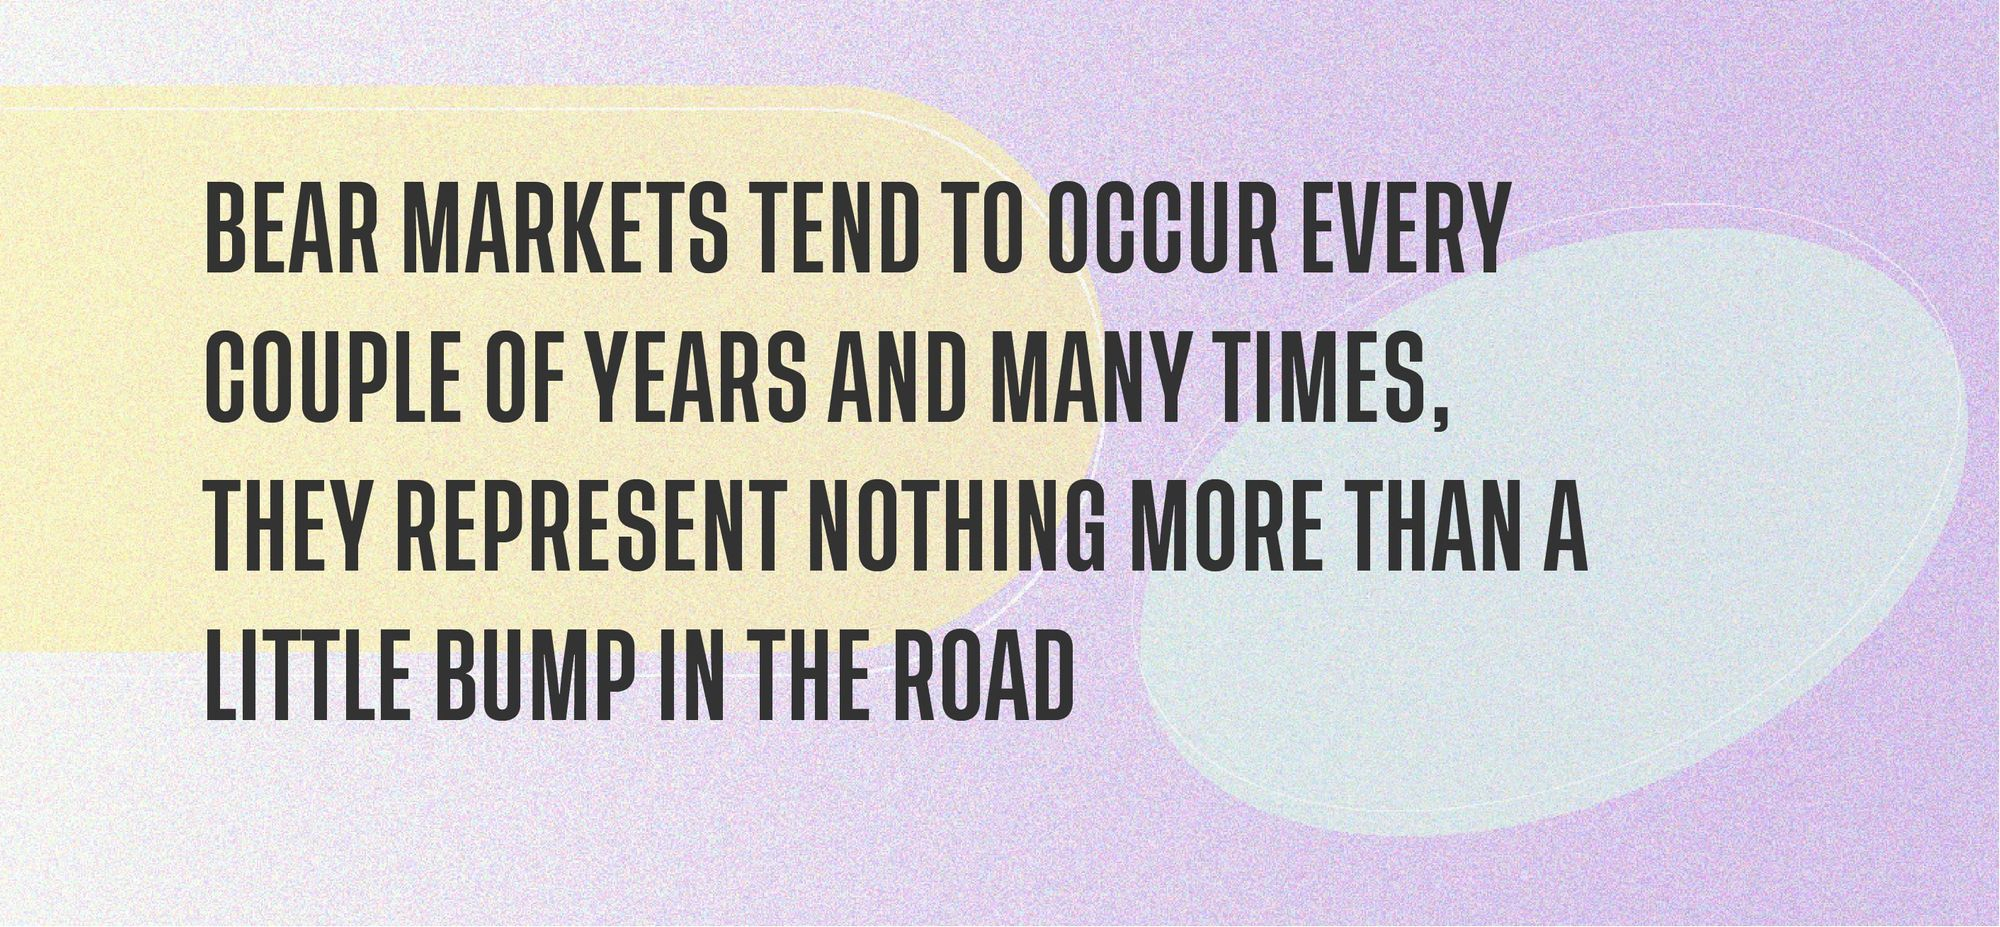 Bear markets tend to occur every couple of years and many times, they represent nothing more than a little bump in the road